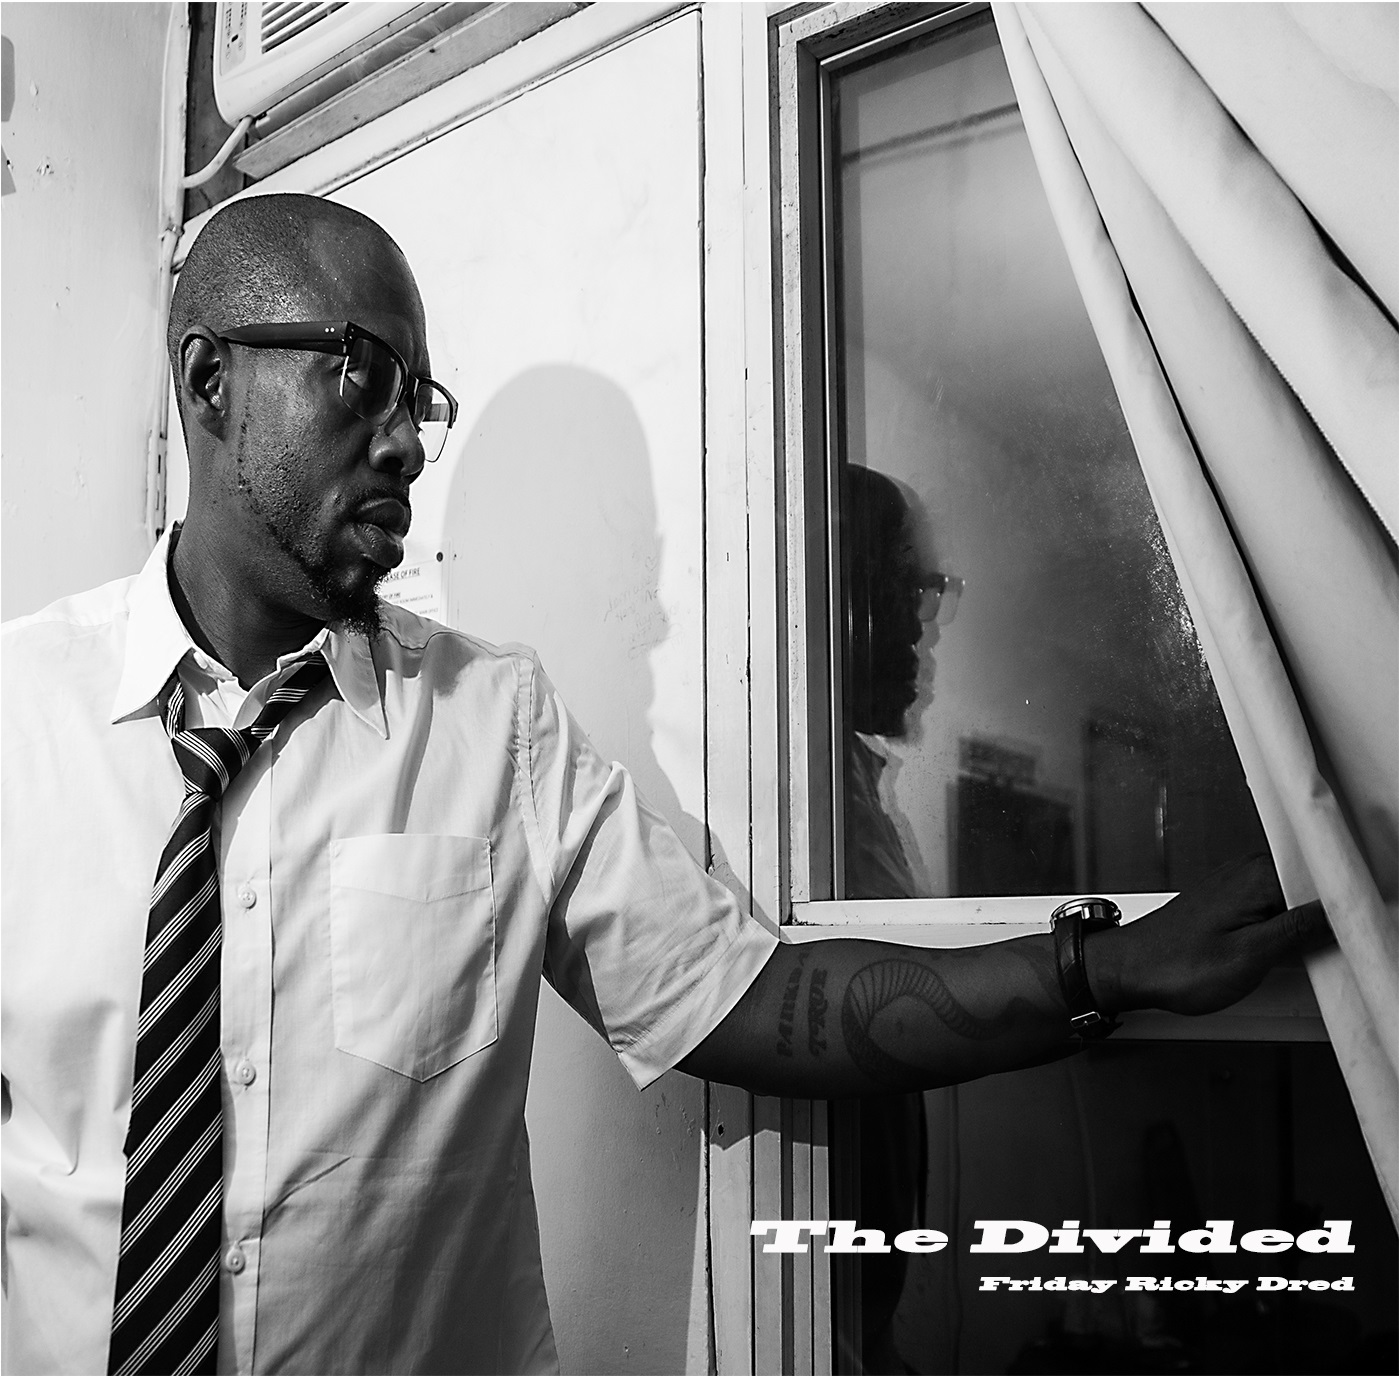 The Divided Cover No Border.jpg